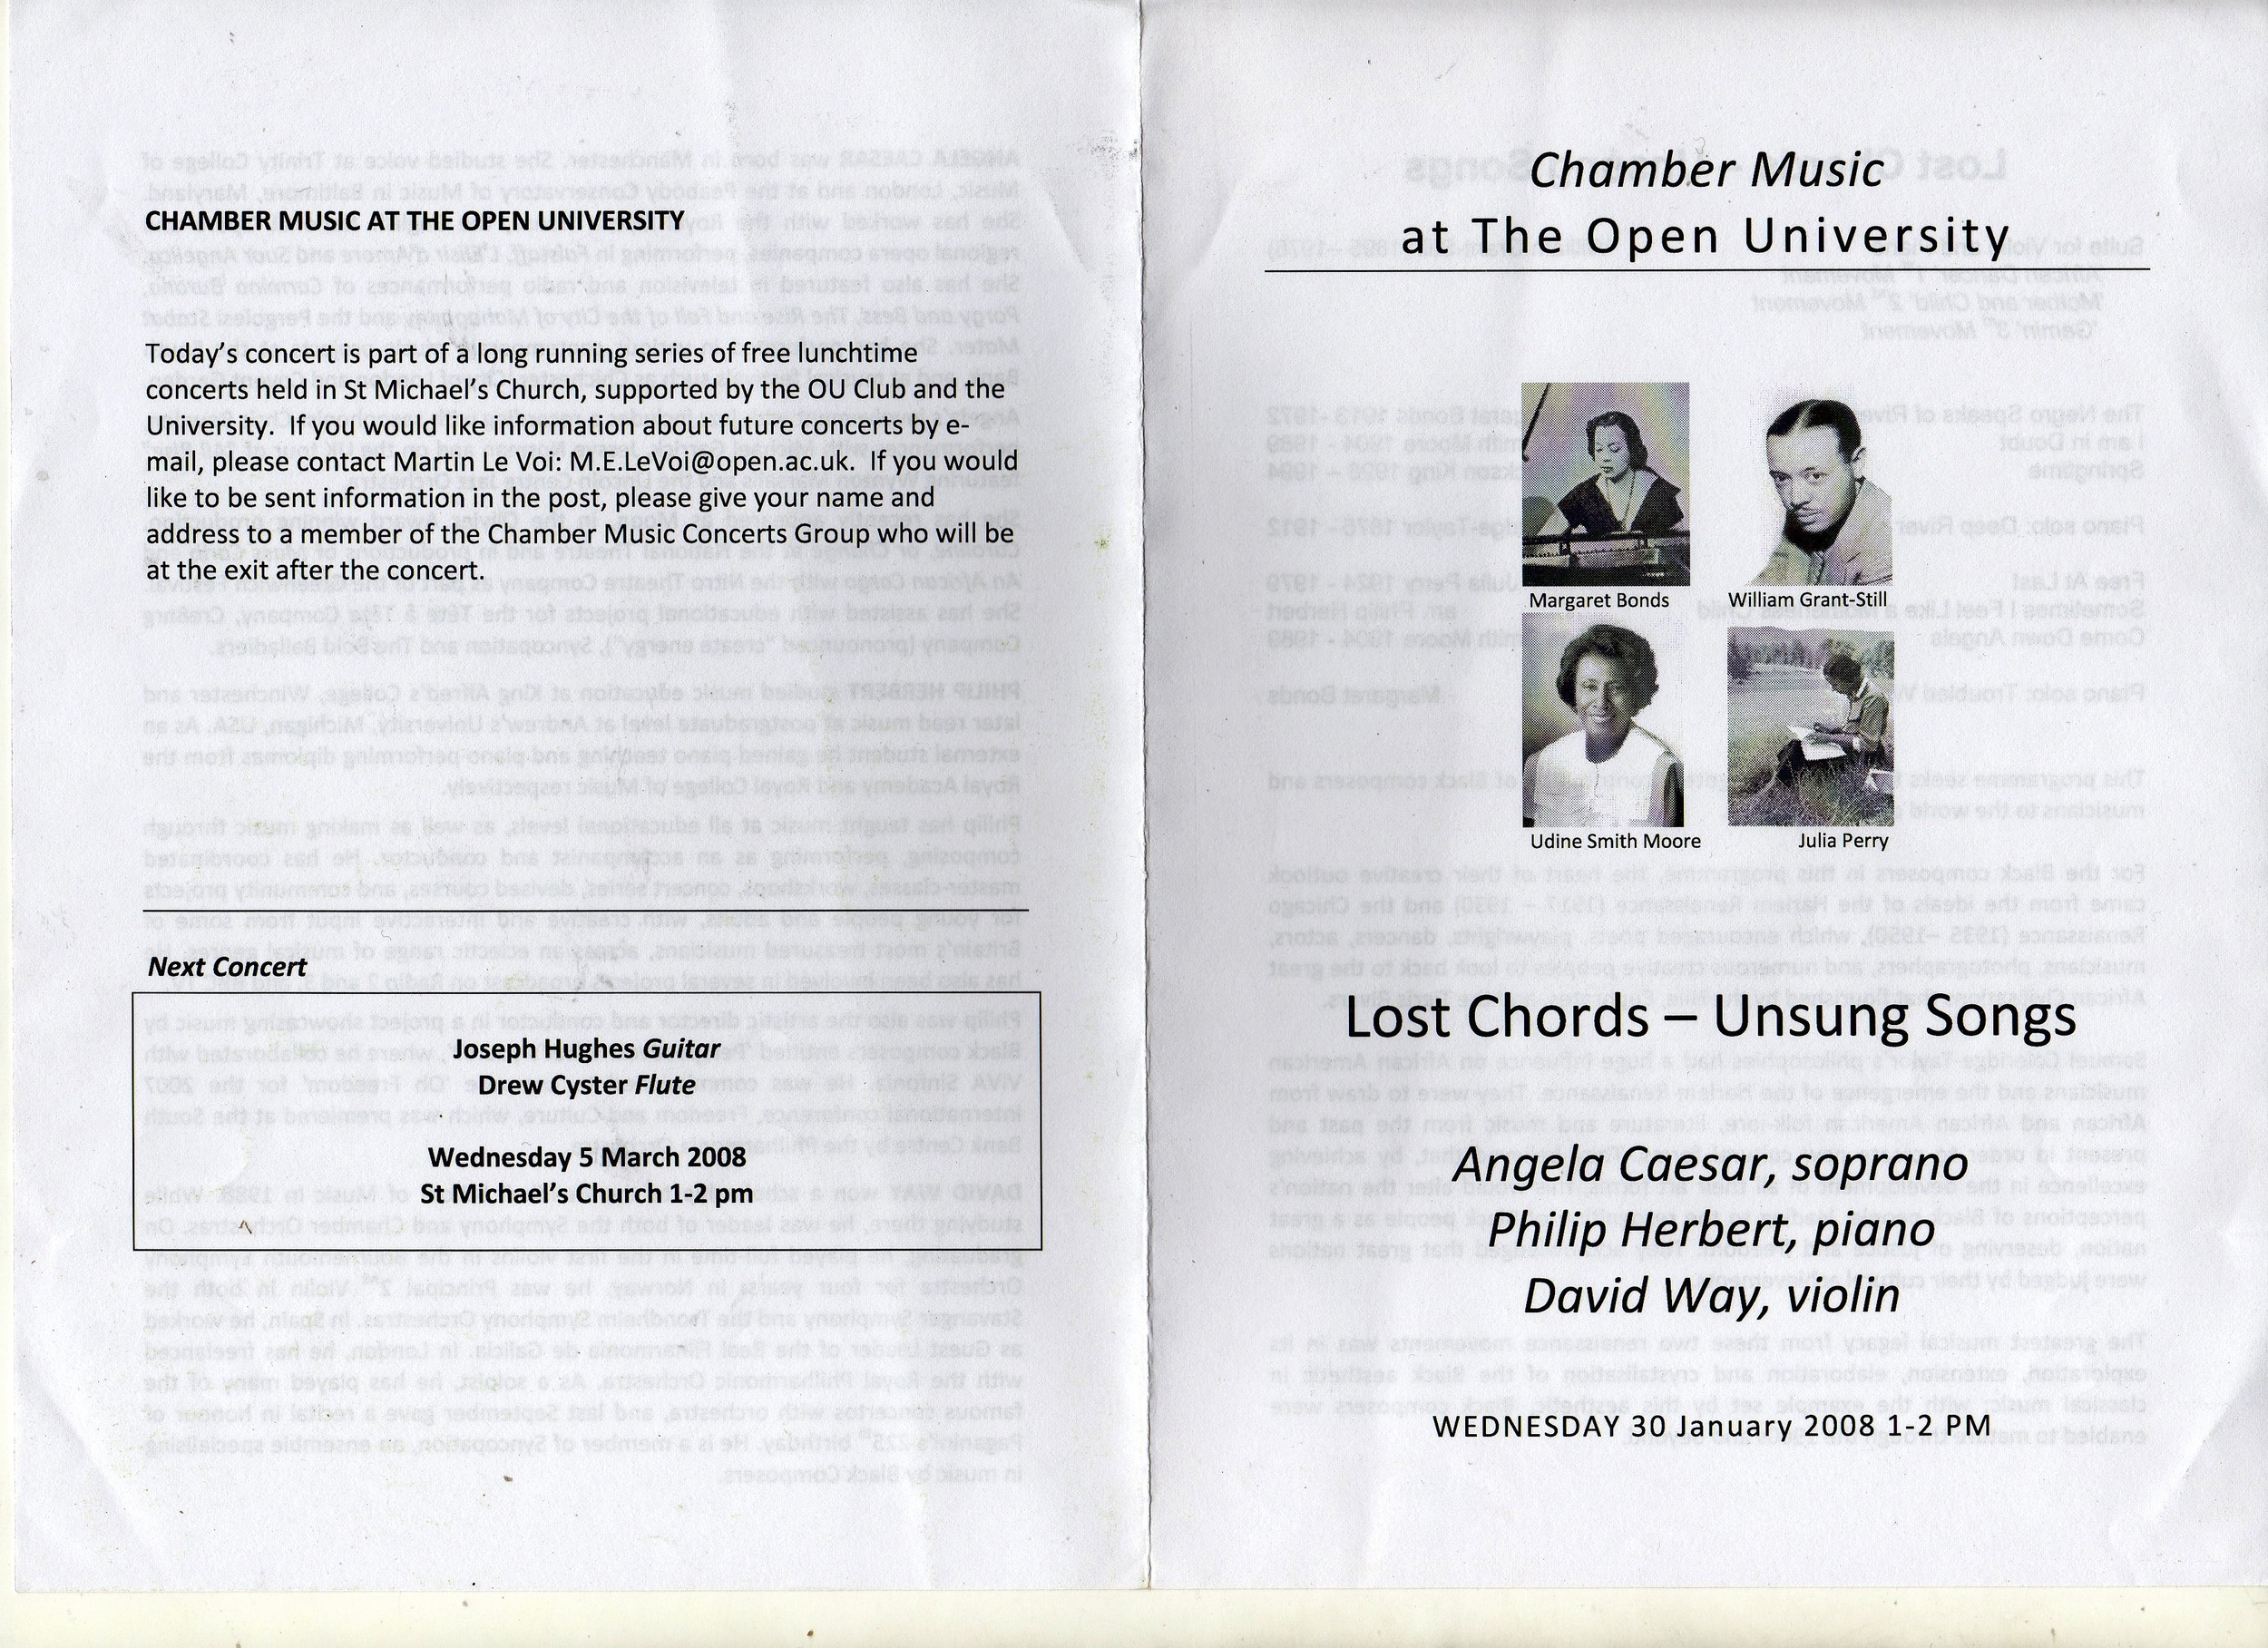 Lost Chords - Unsung Songs